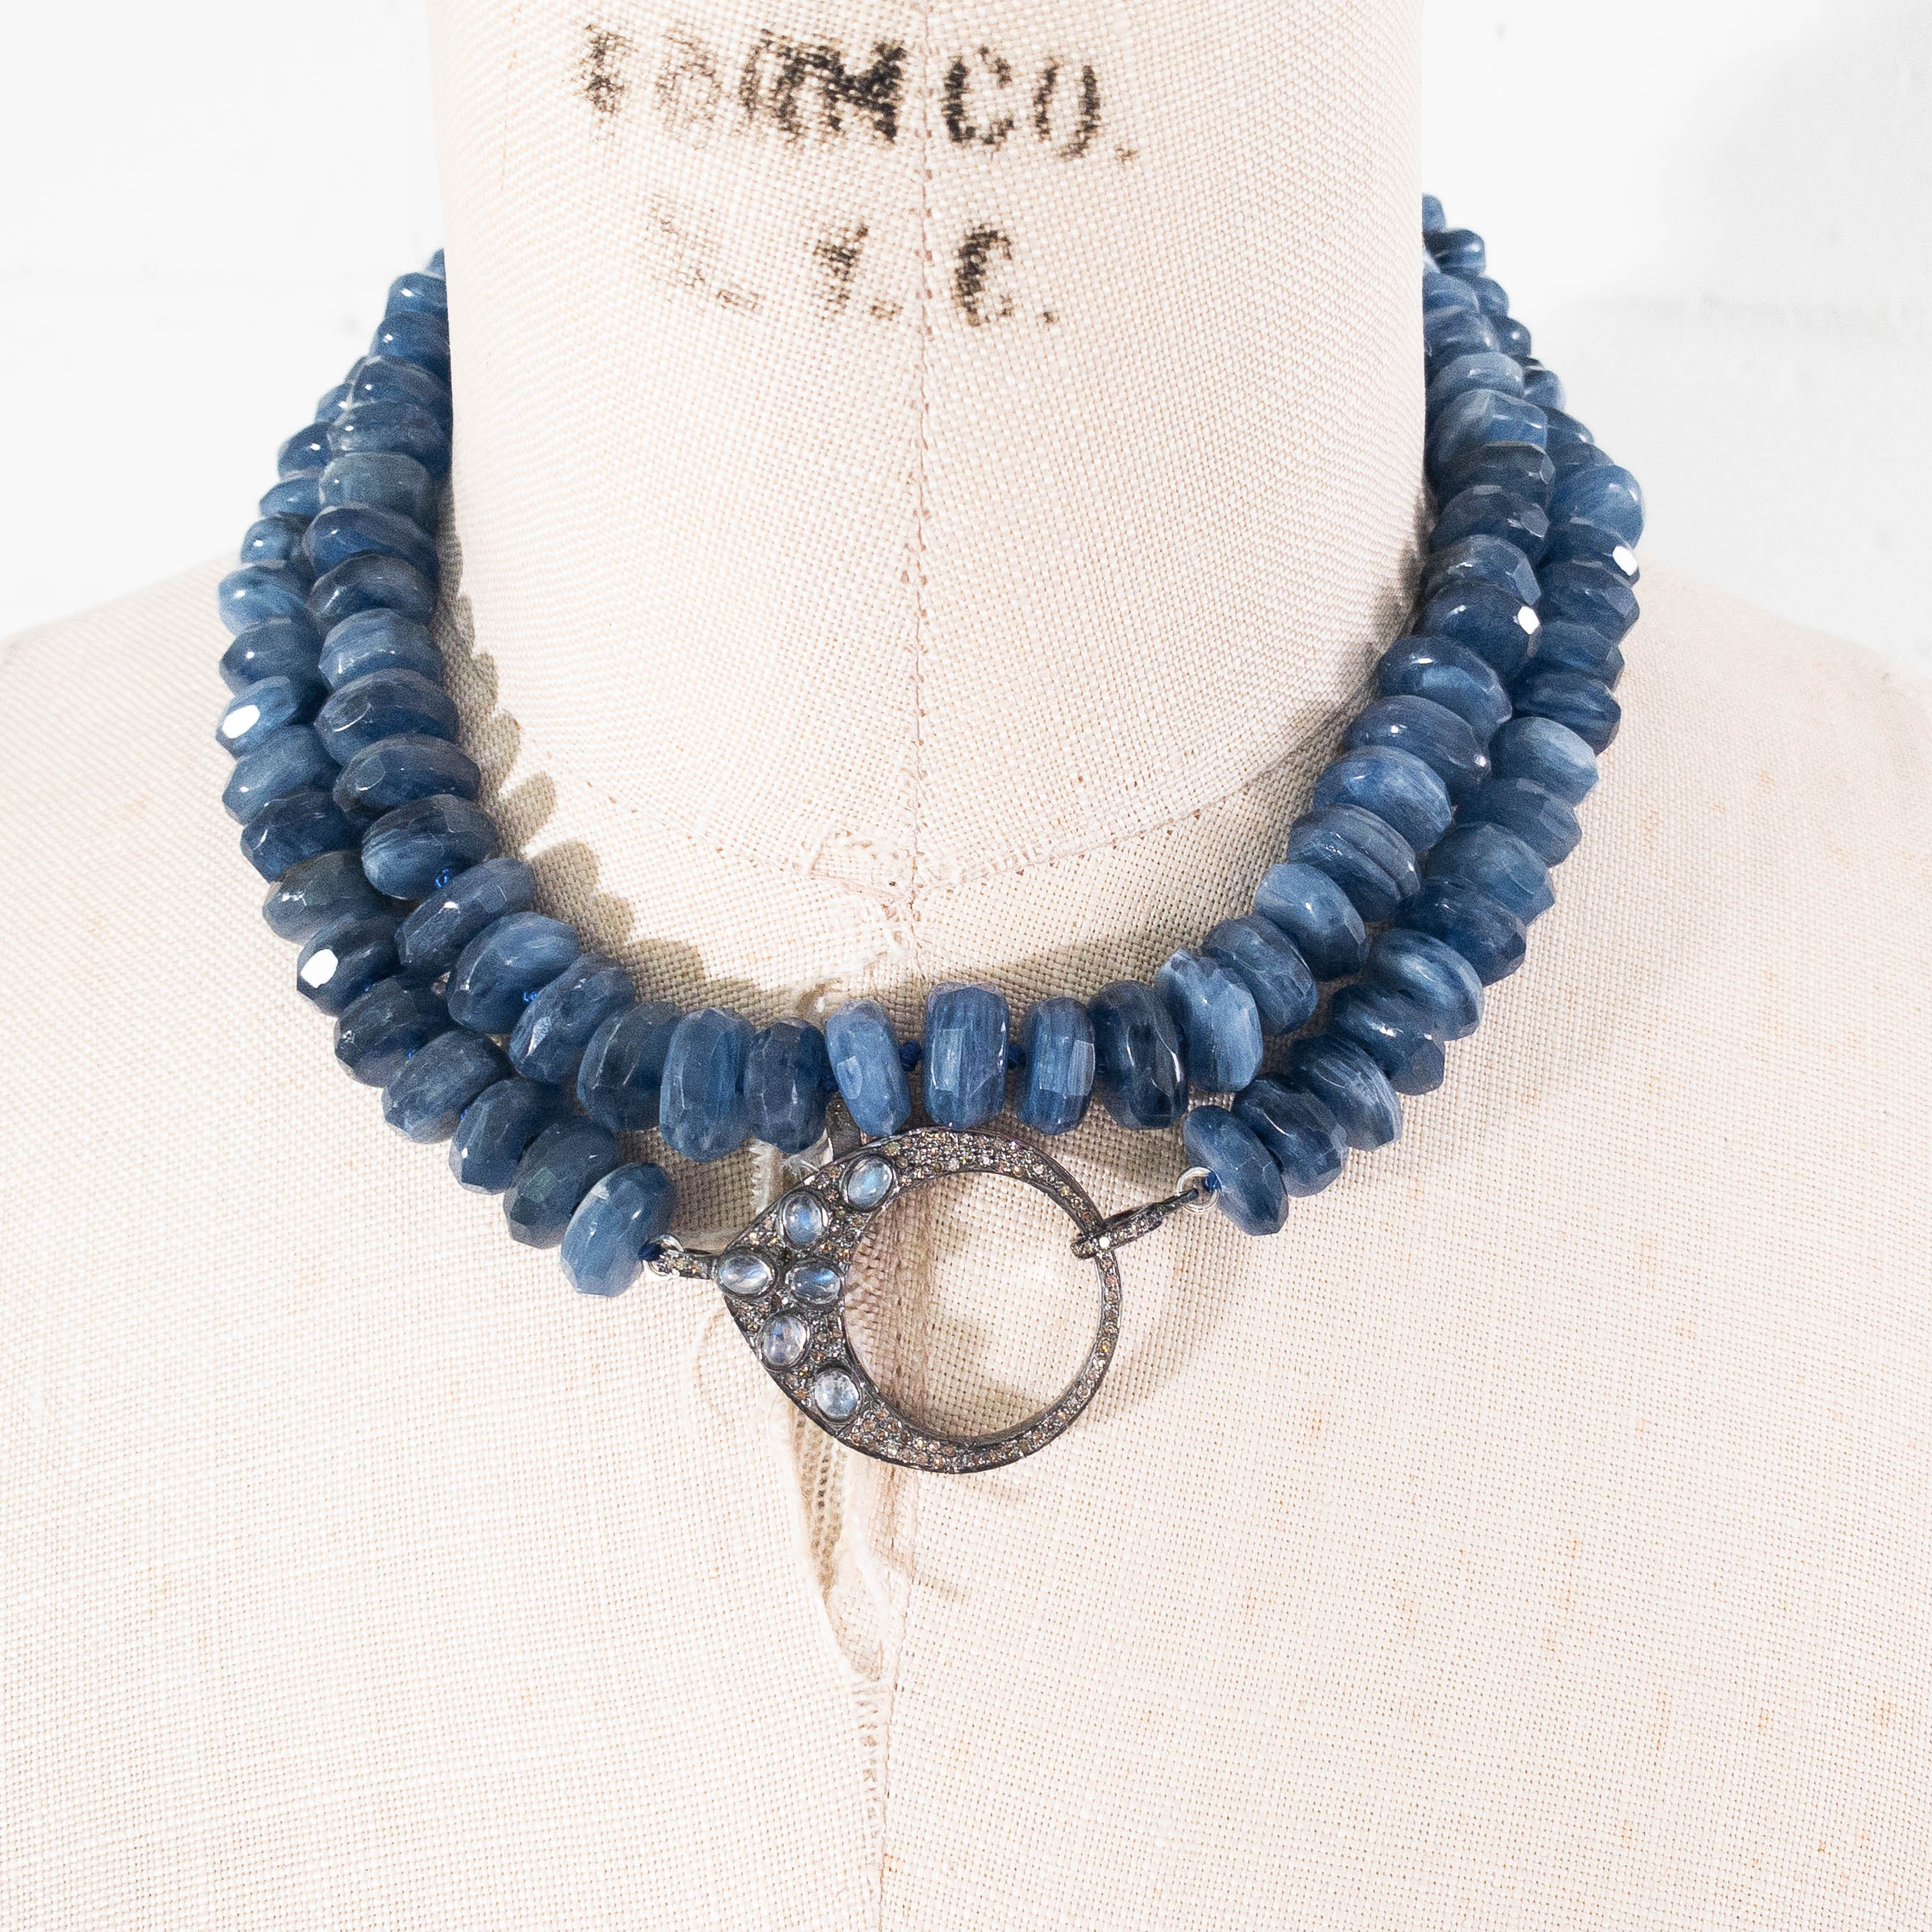 Pavé Diamond Clasp with Hand-Knotted Kyanite Necklace